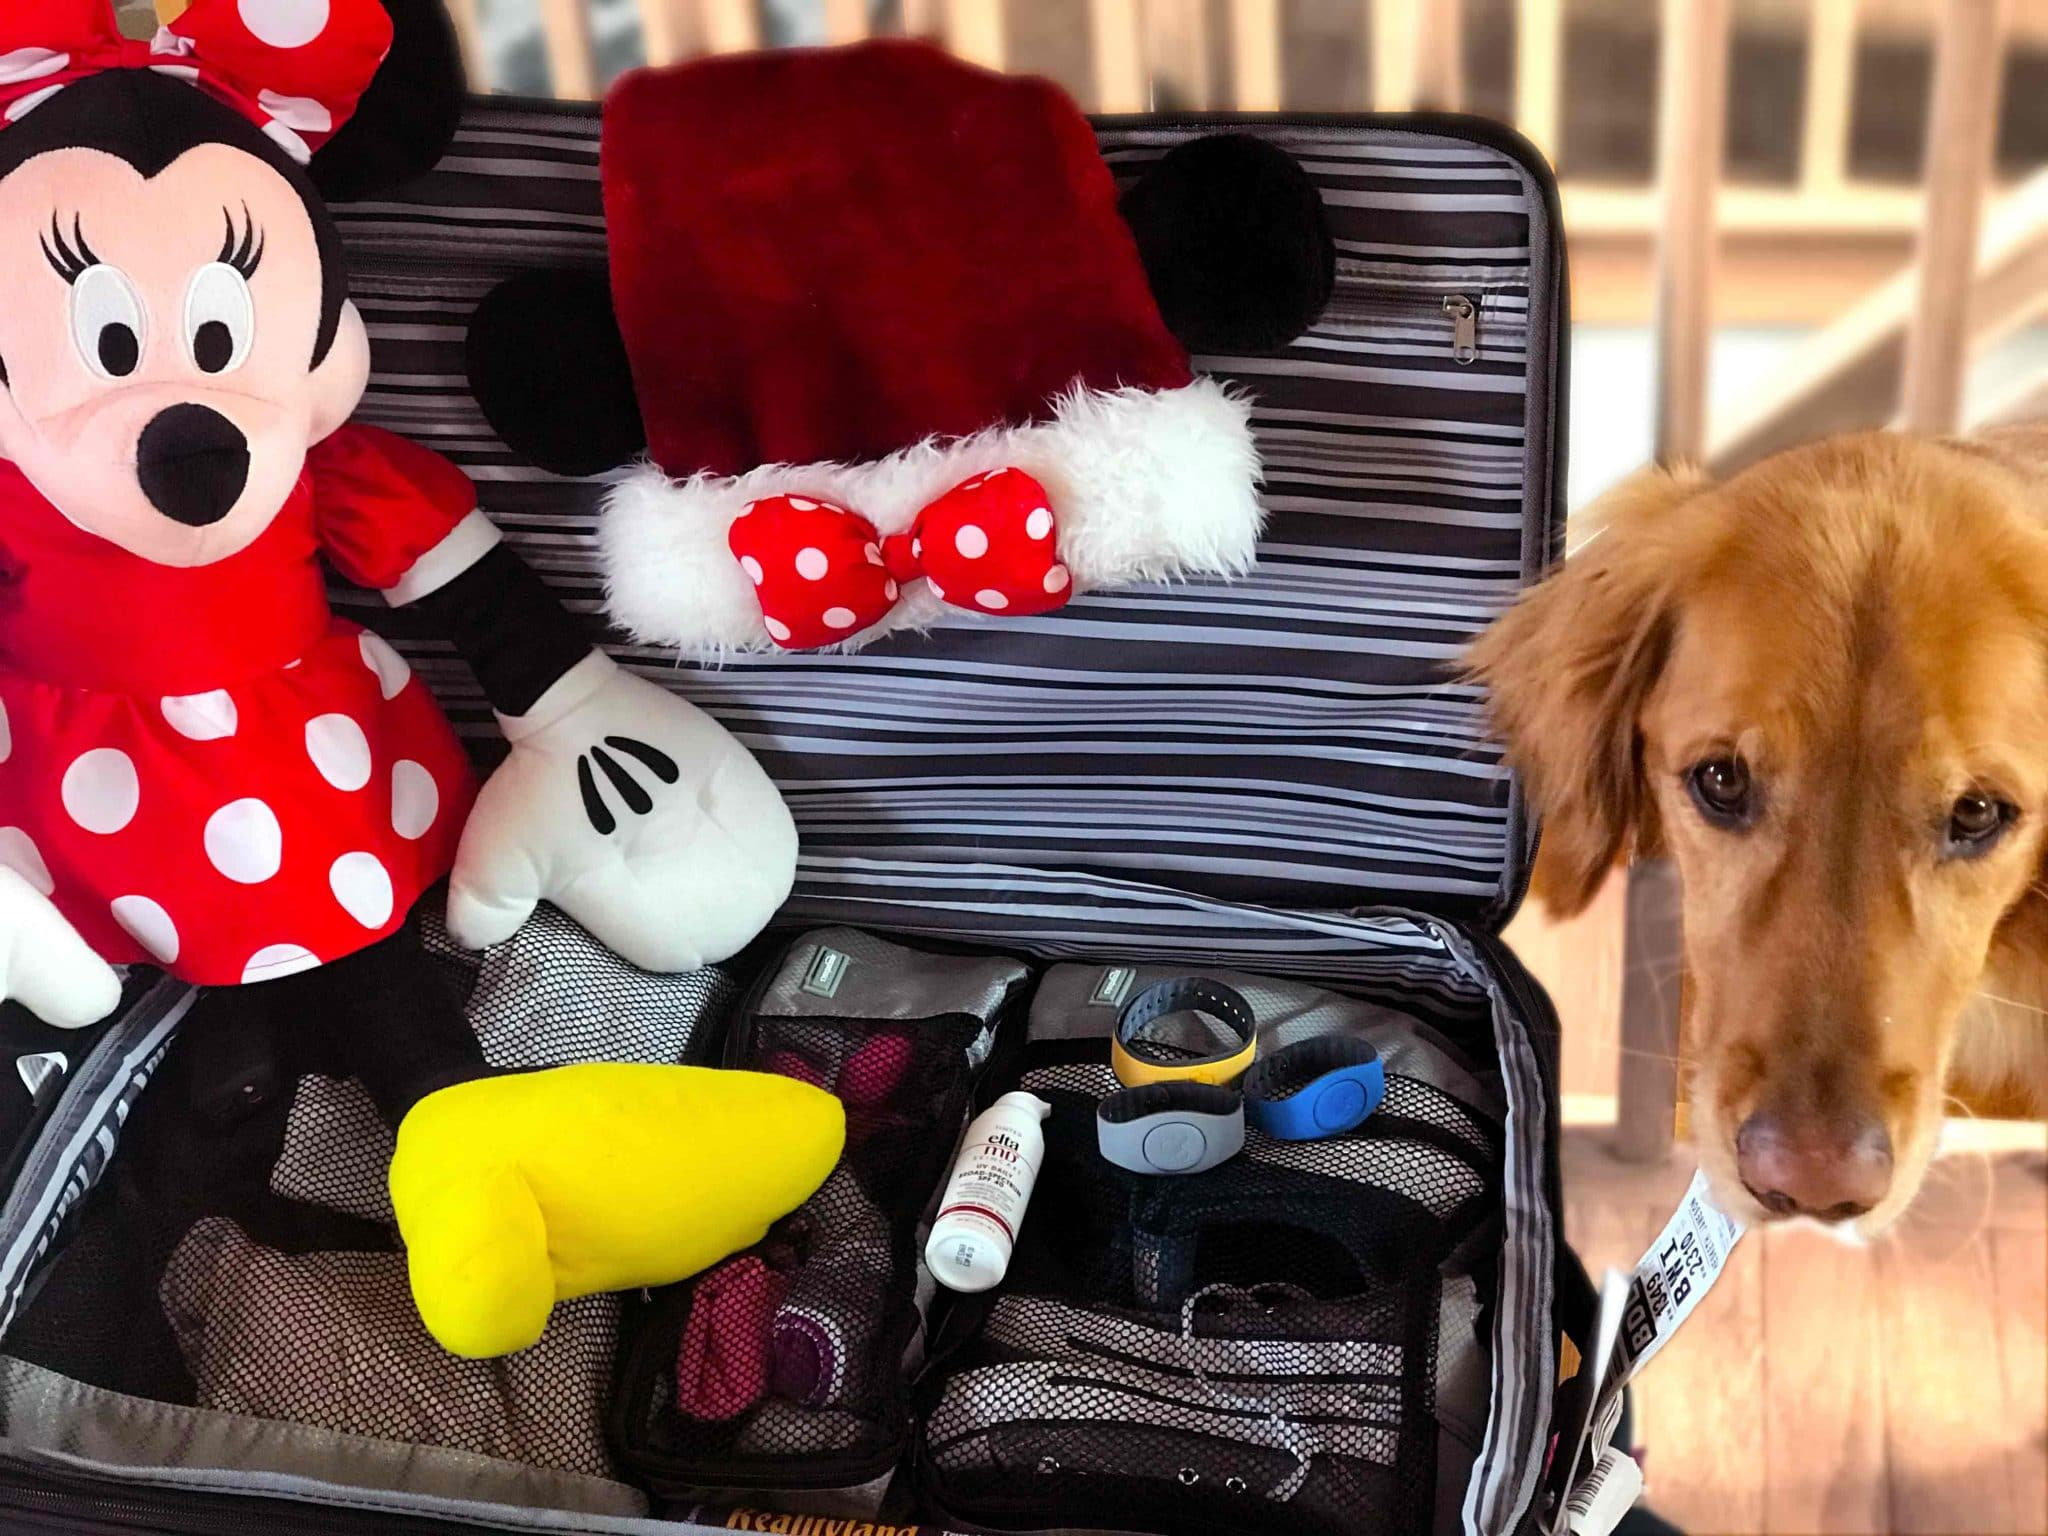 Disney vacation planning- your essential packing list. Seconds to Go